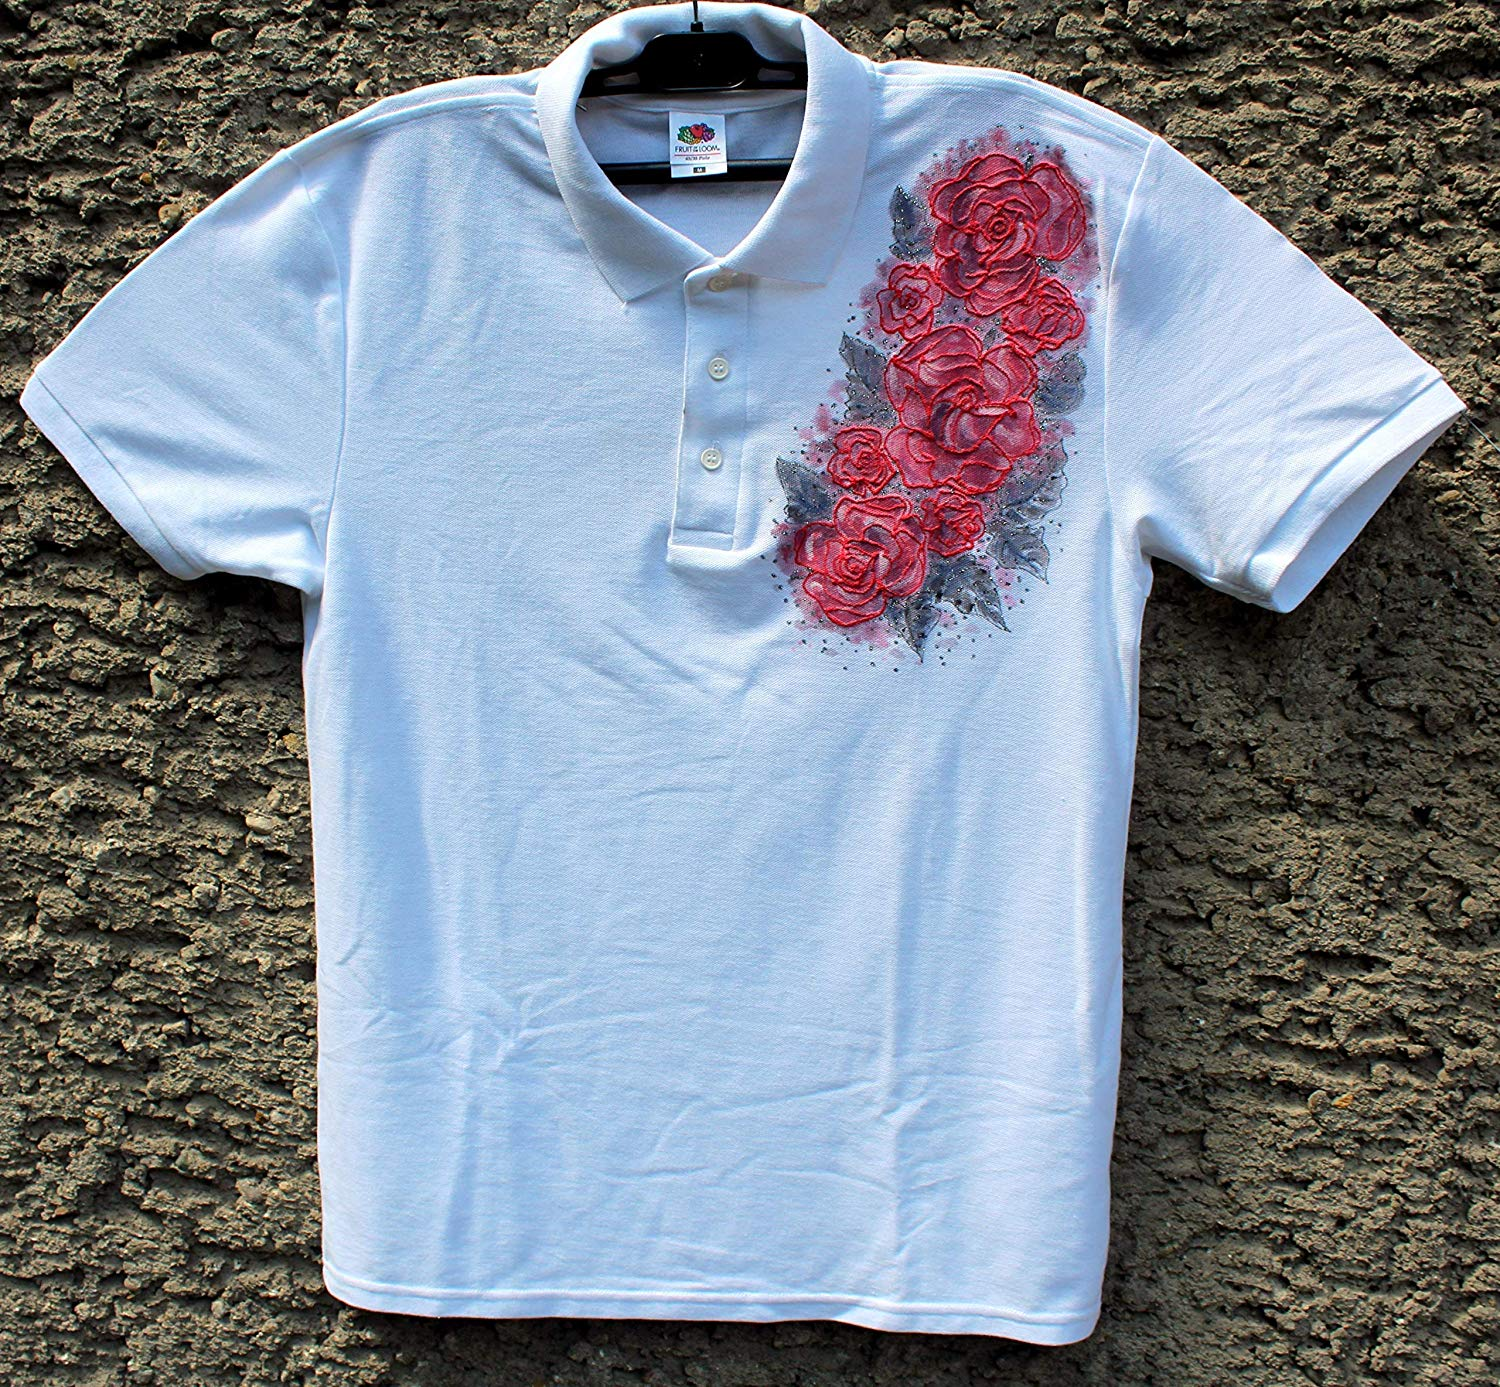 Buy Sale20 Offwhite Polo T Shirt With Red Roseshand Painted